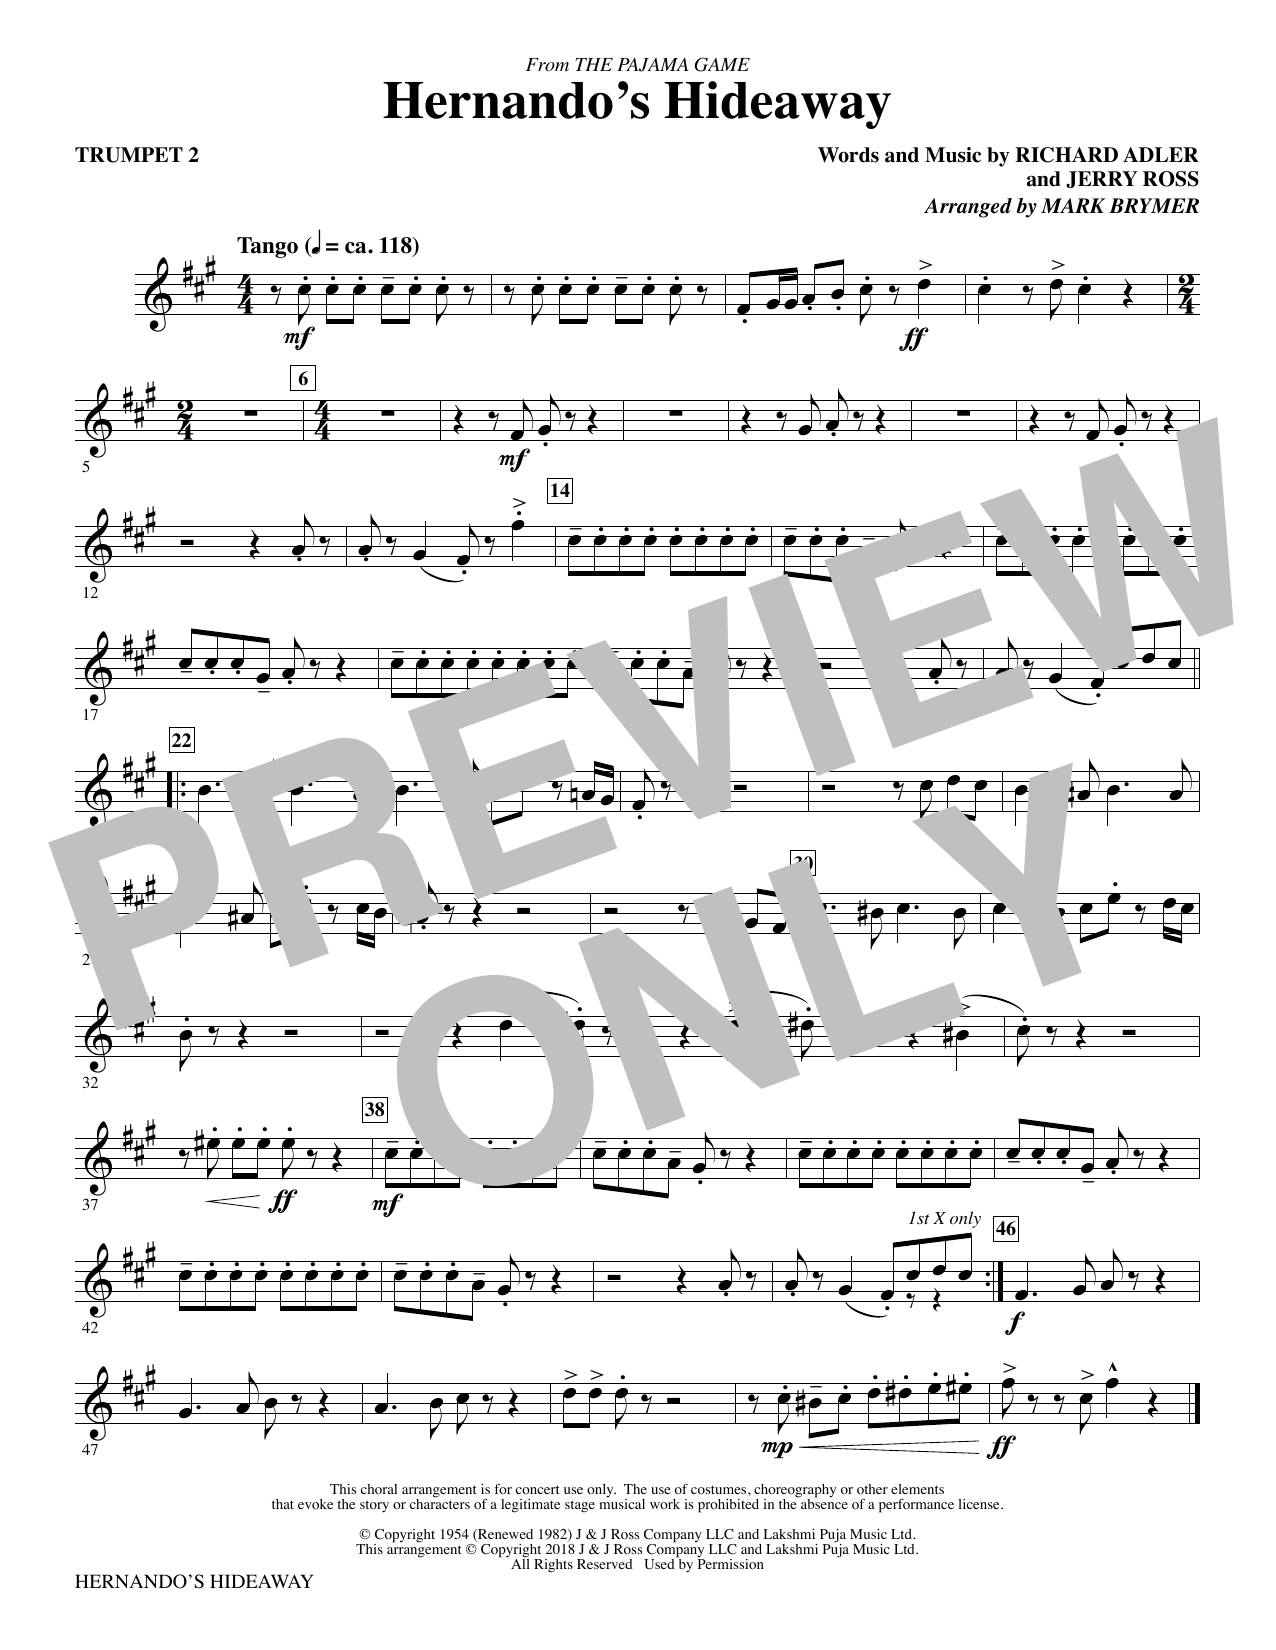 Mark Brymer Hernando's Hideaway - Trumpet 2 sheet music notes and chords. Download Printable PDF.